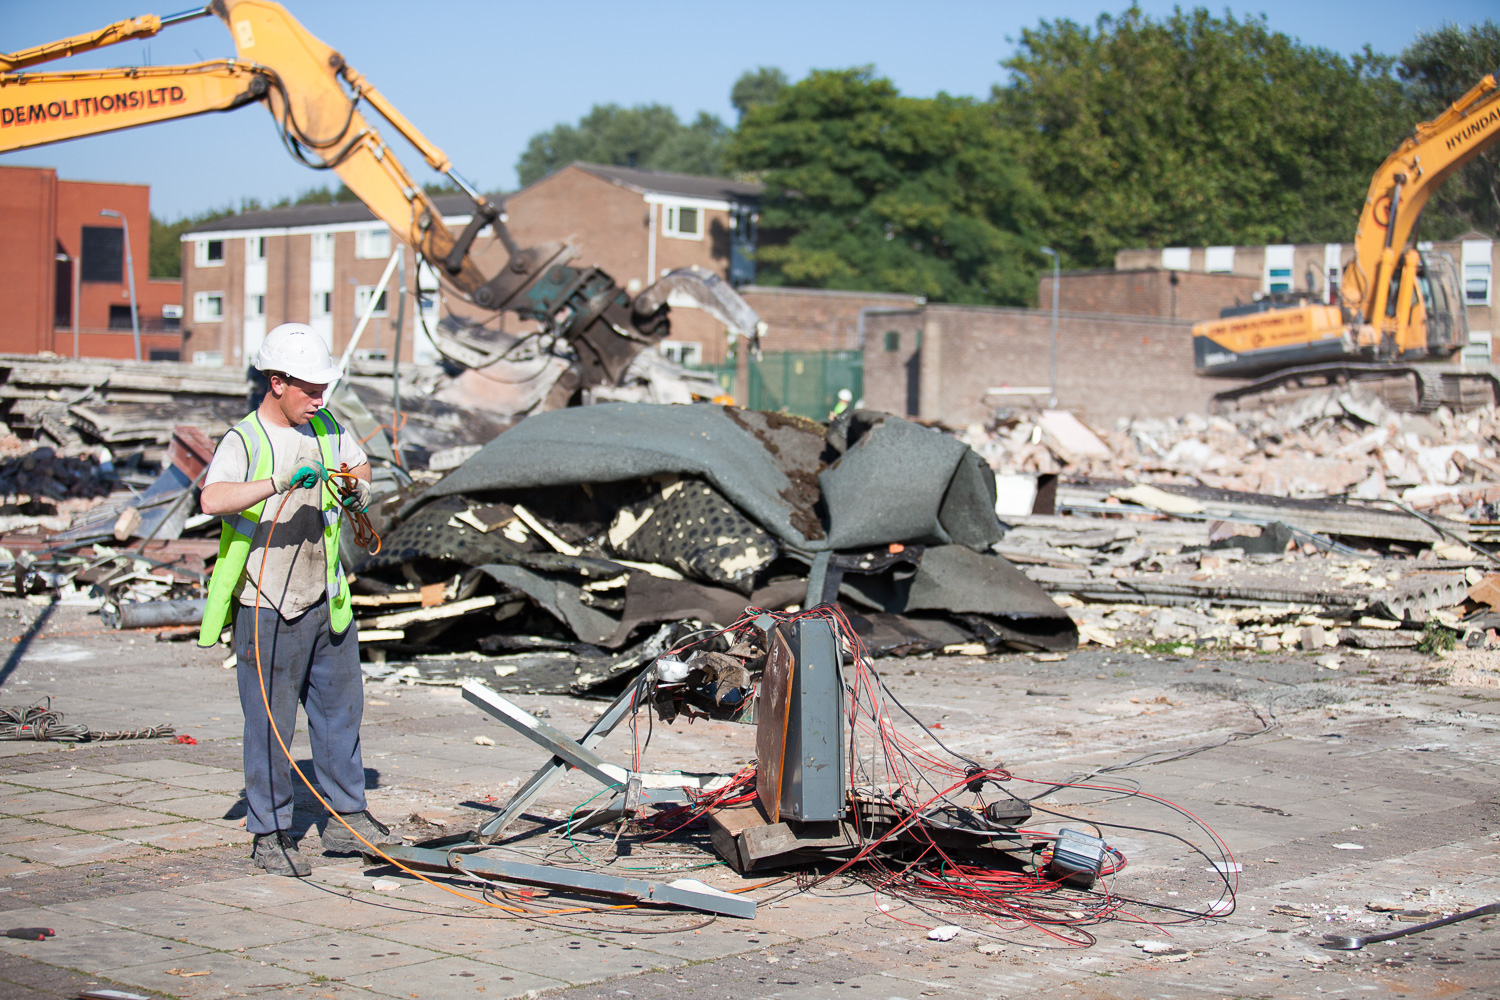 Gt Homer St Demolition_11_©Matthew Nichol Photography.jpg